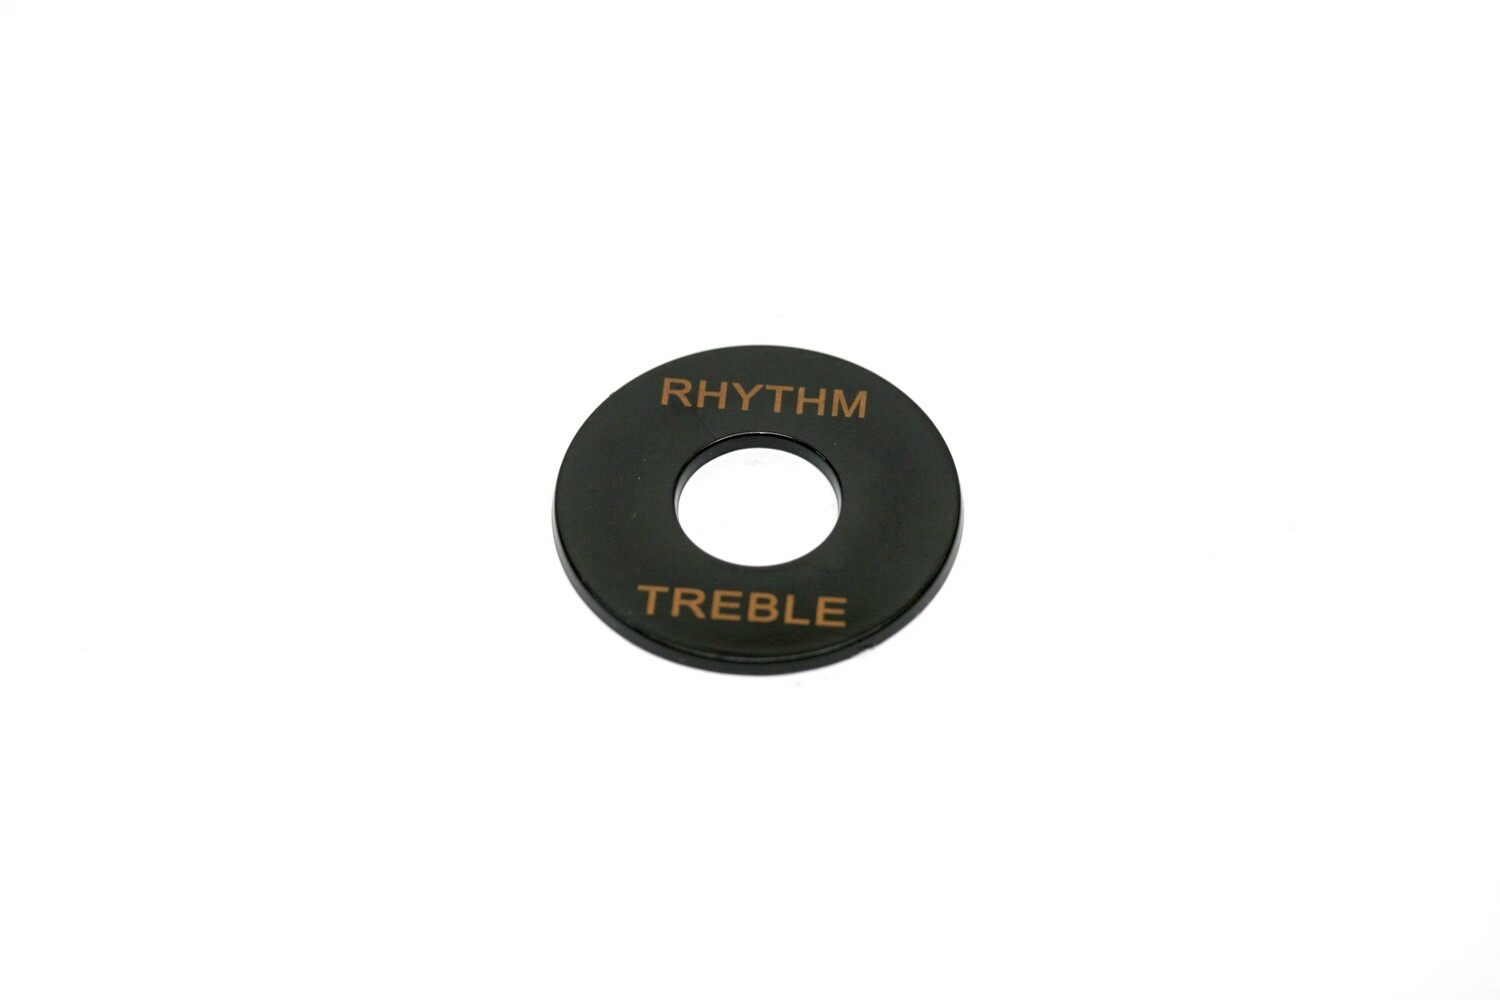 Plastic Rhythm/Treble Ring - Black